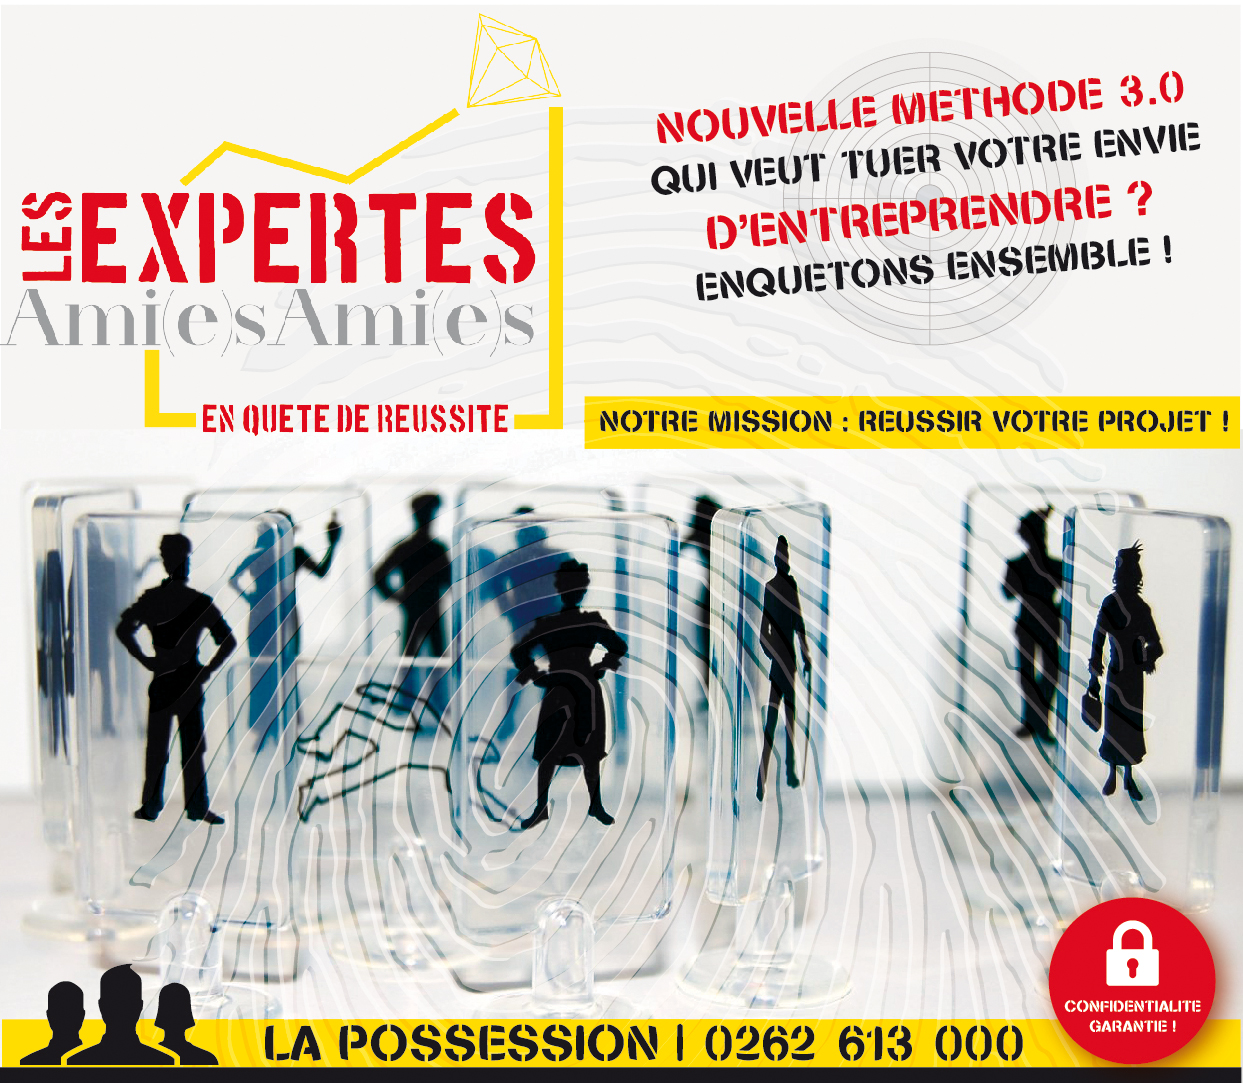 Les Expertes Amies Amies | Flyer | Conception